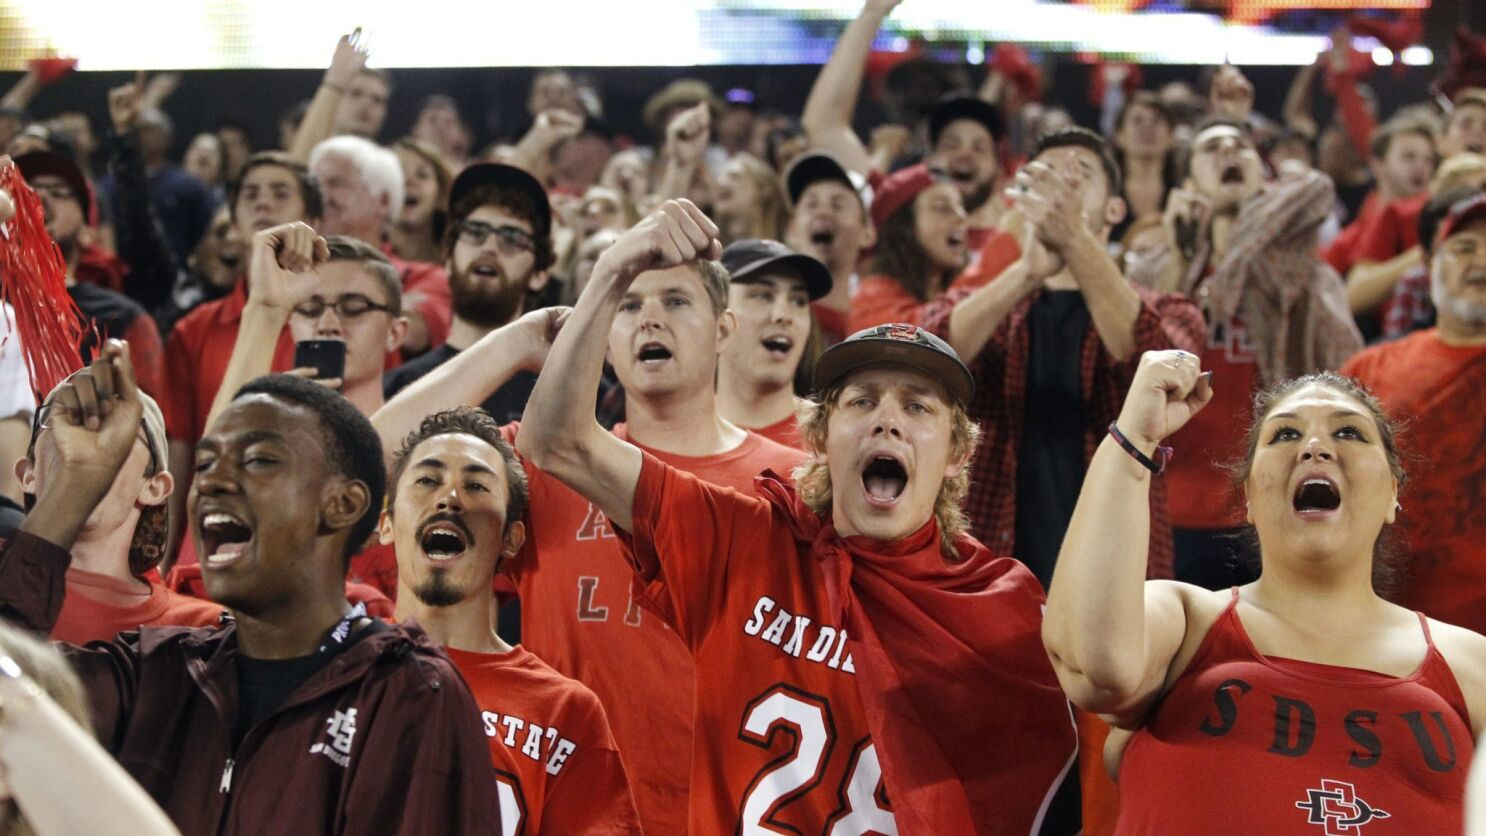 Aztecs Football Looking Back At 2018 Attendance And Looking Ahead To 2019 Season Ticket Sales The San Diego Union Tribune